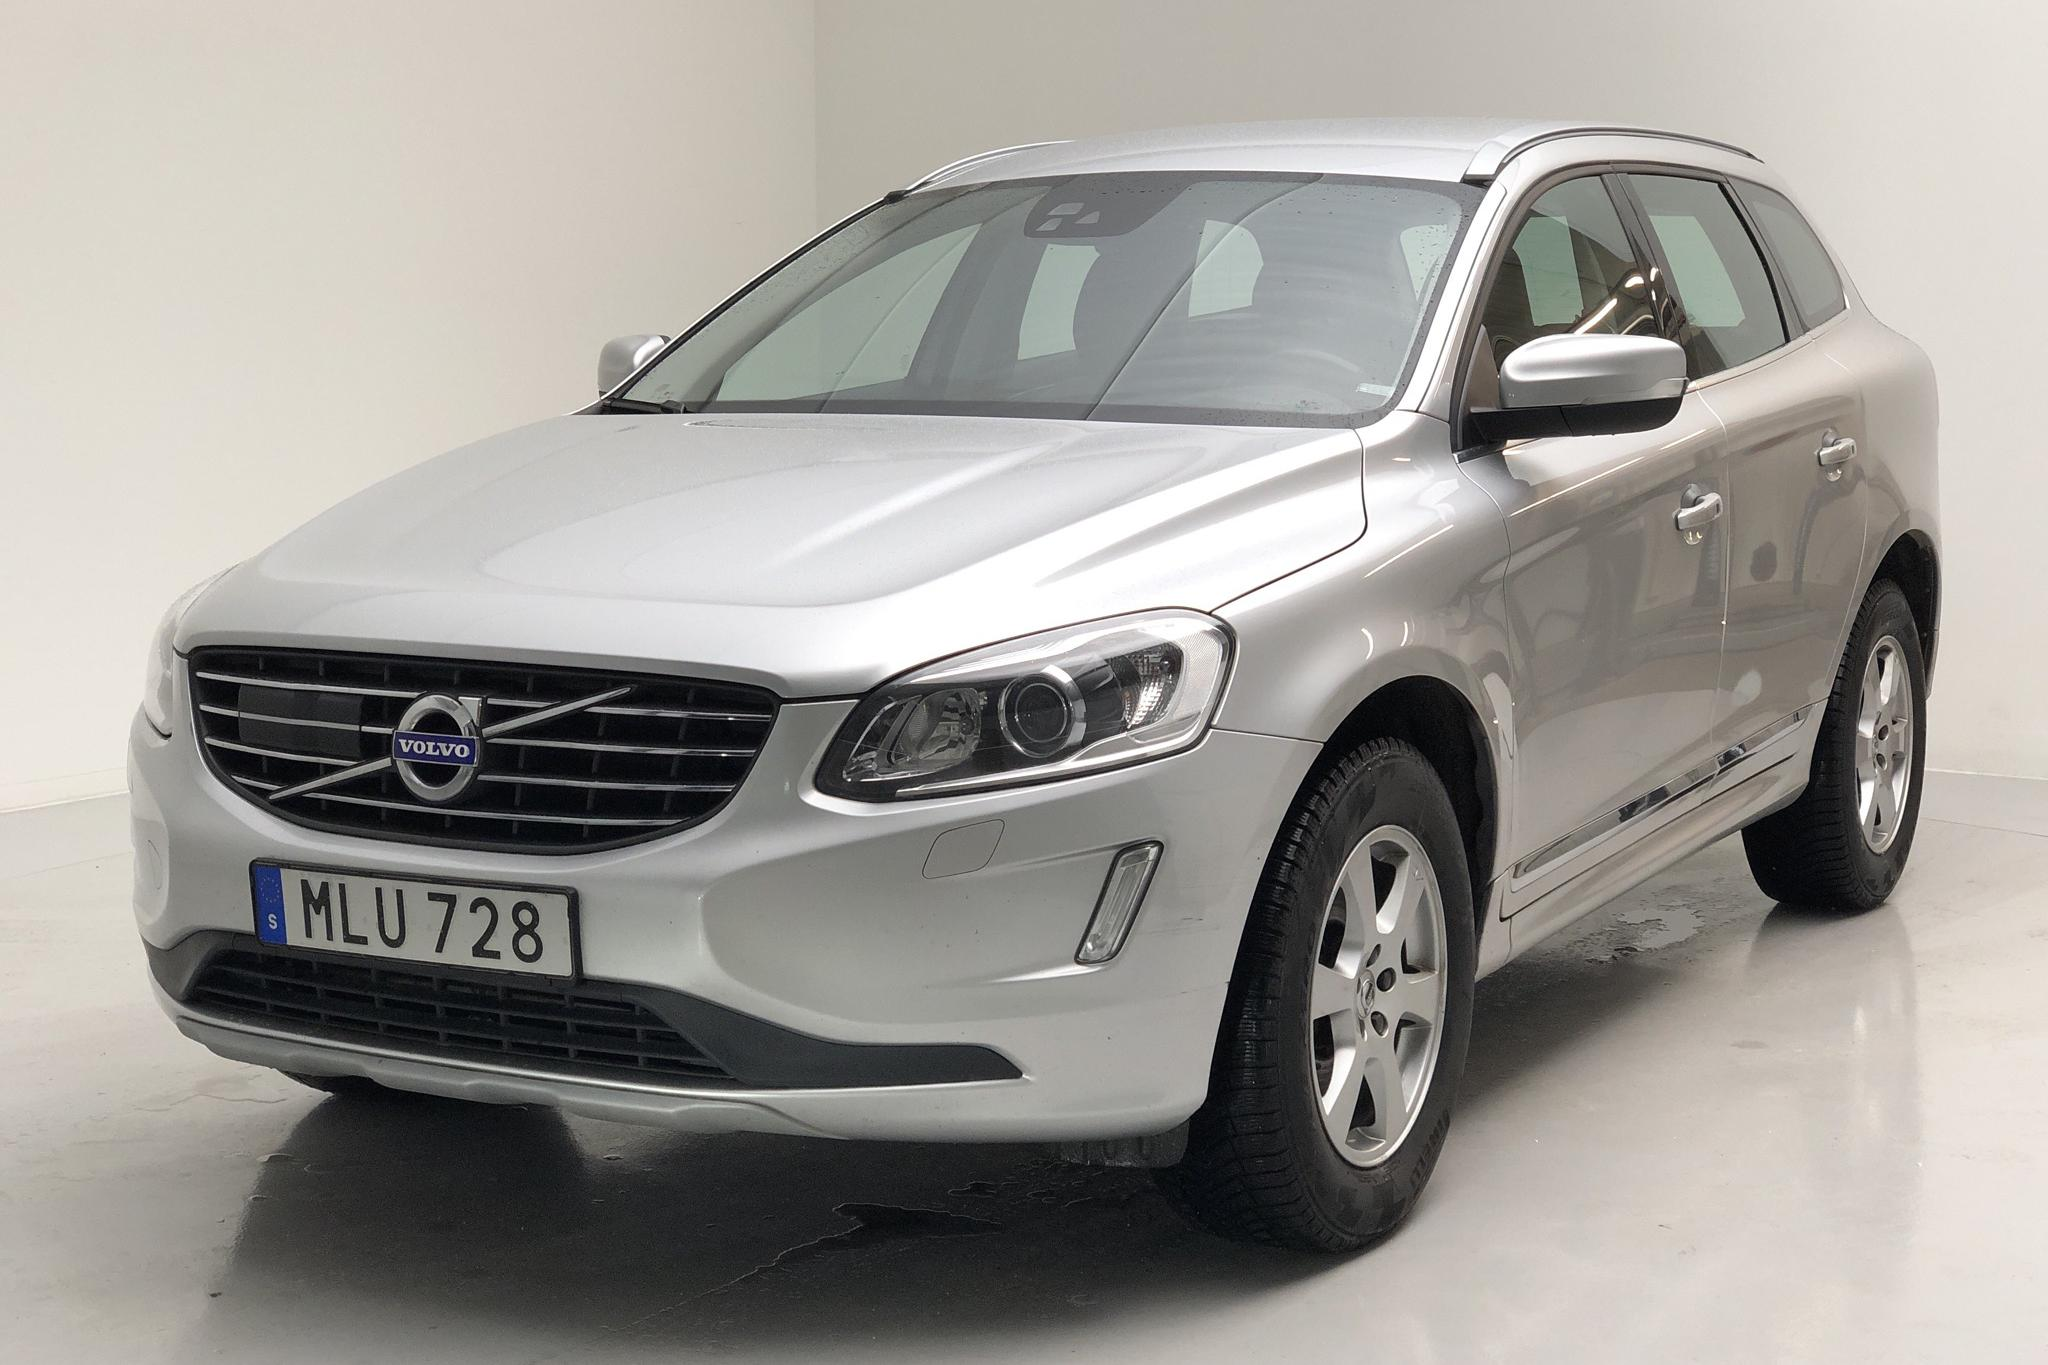 Volvo XC60 D4 AWD (190hk) - 14 903 mil - Automat - silver - 2017